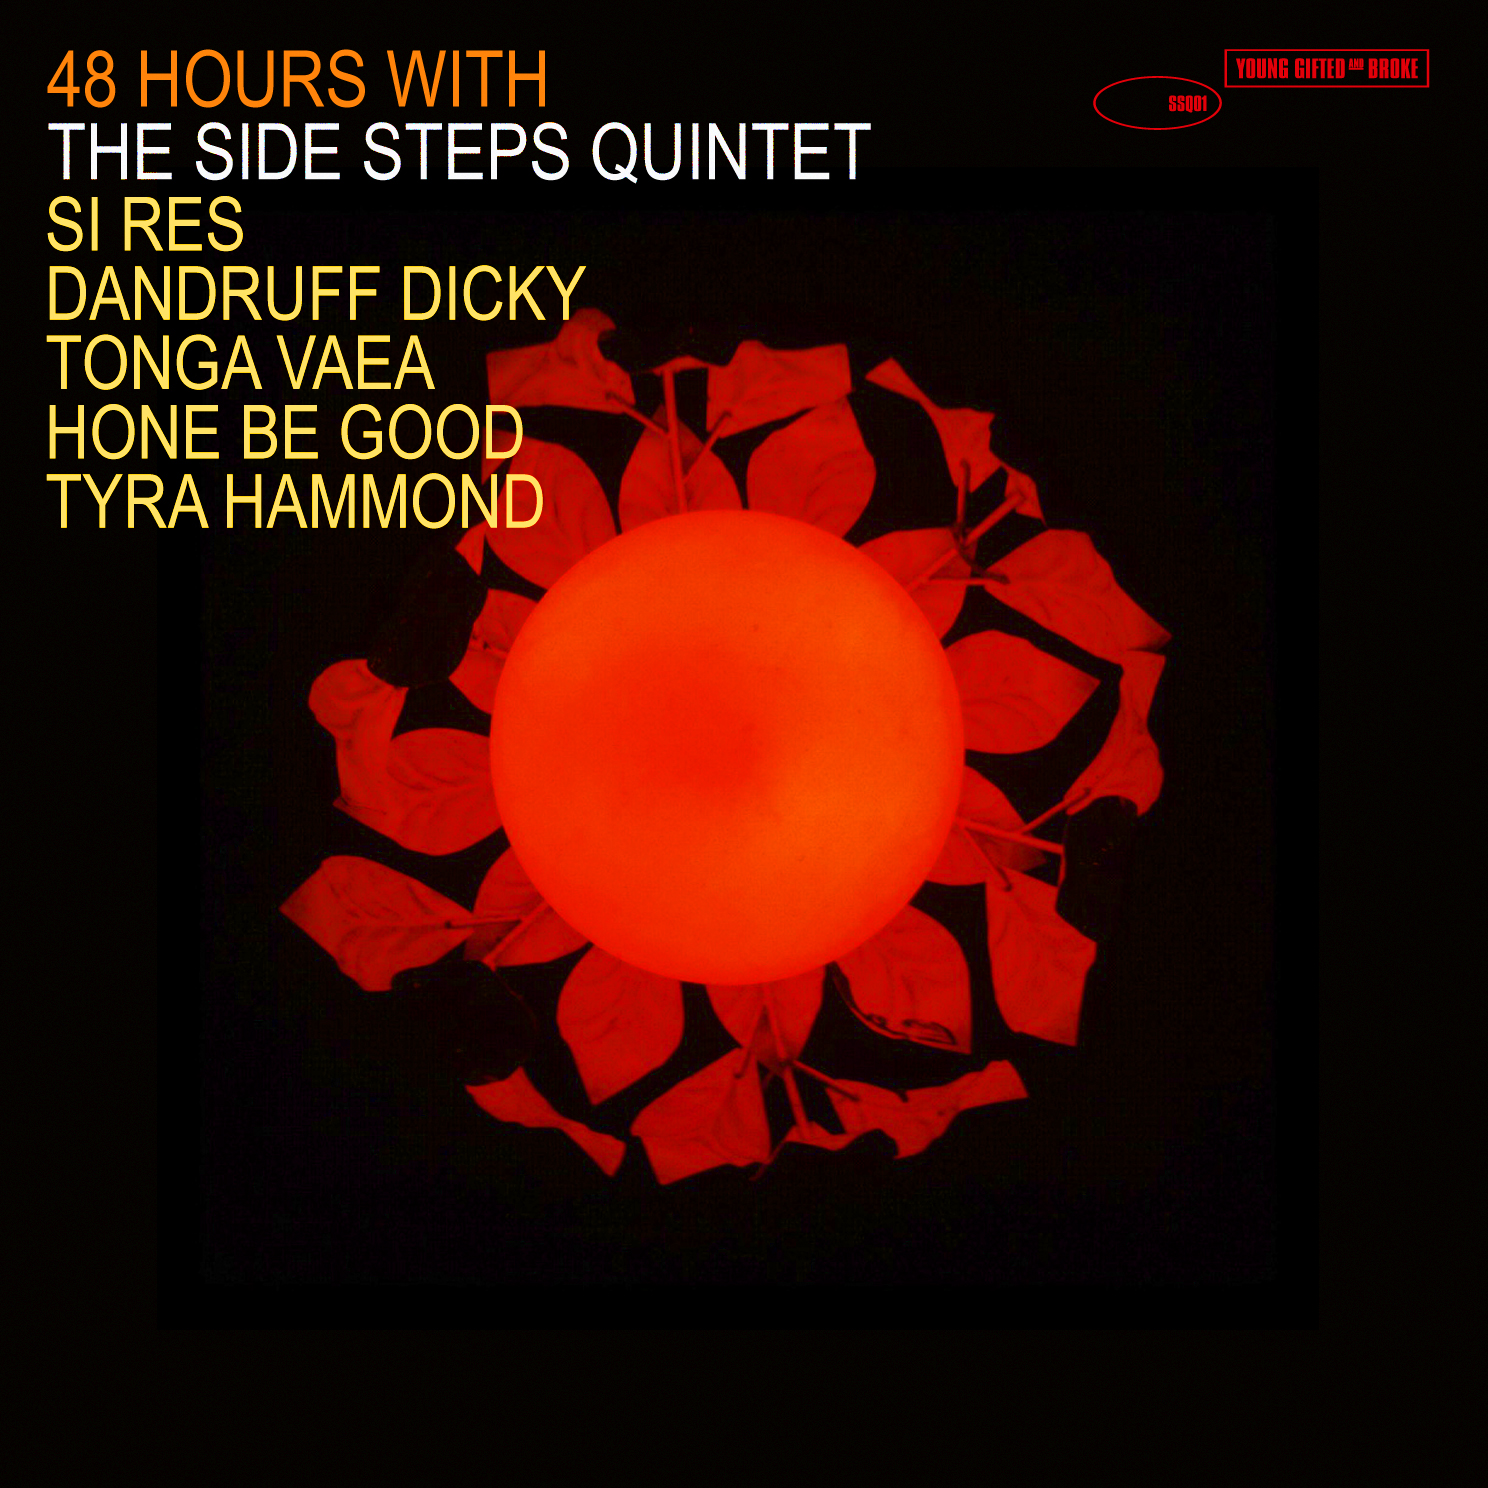 Free Download: The Side Steps Quintet – 48 Hours With The Side Steps Quintet